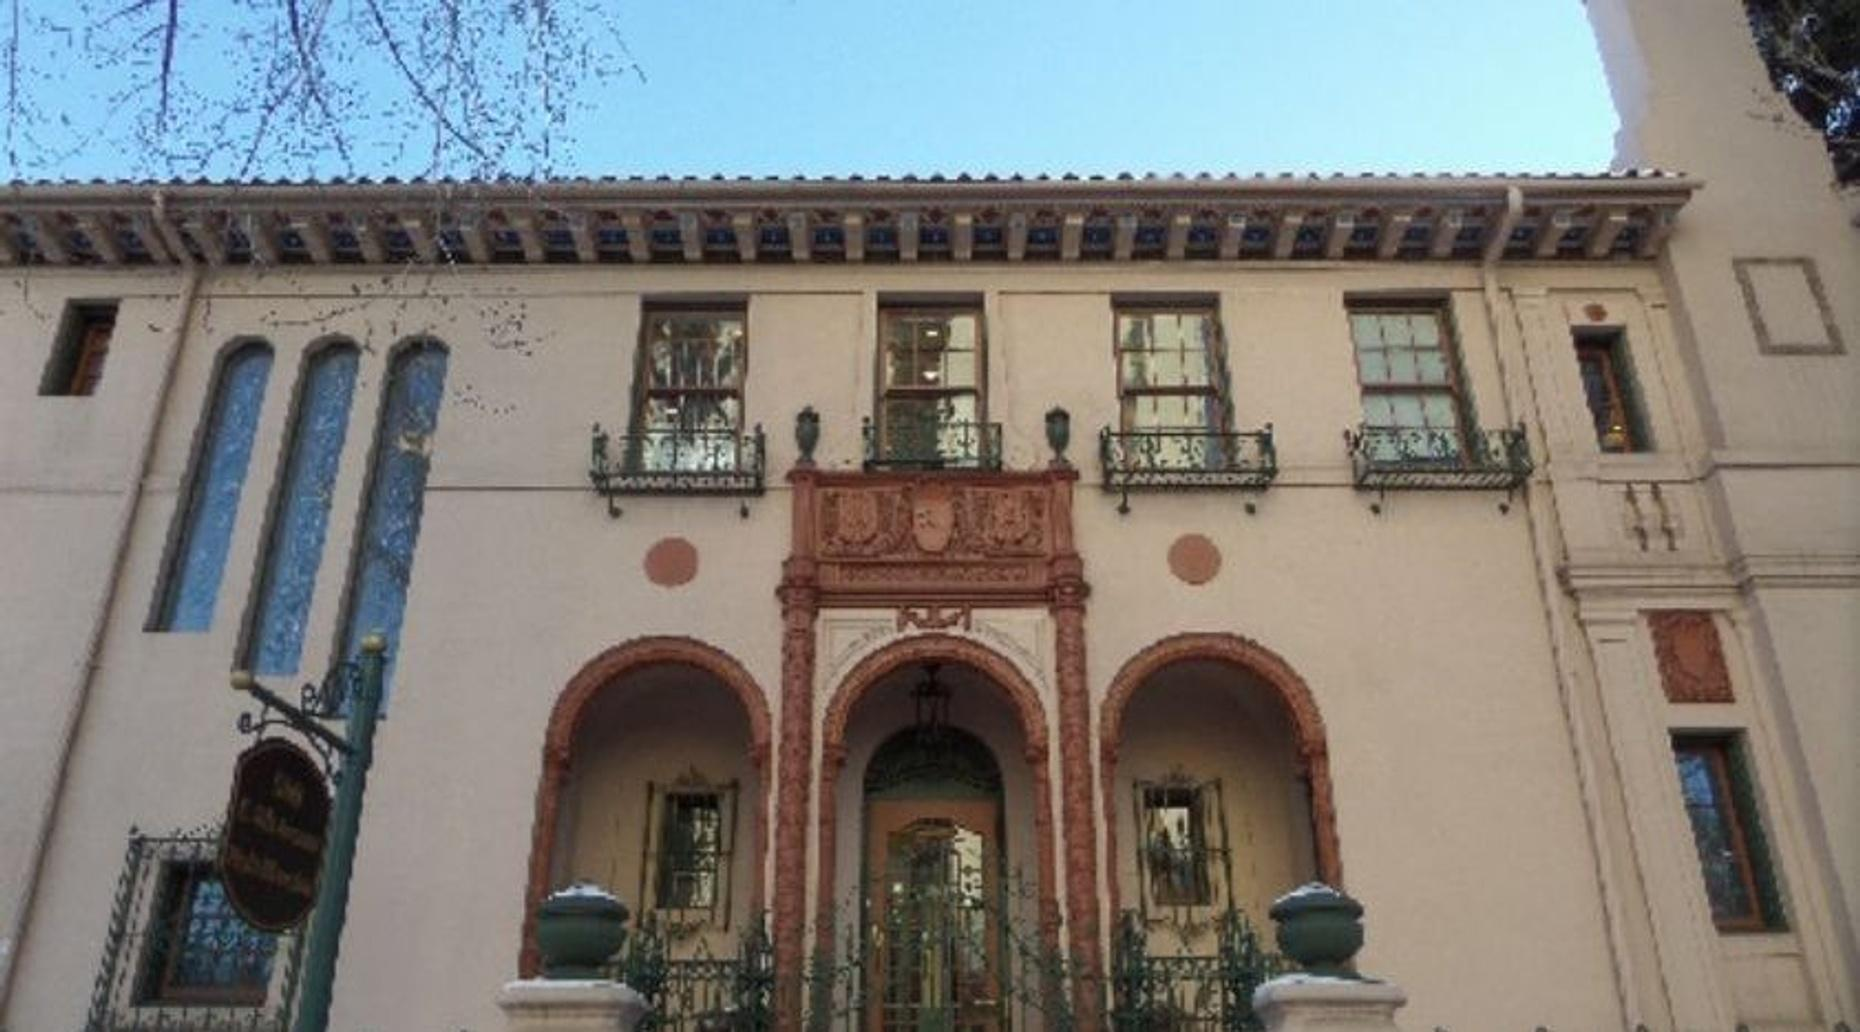 Mansions of Quality Hill Walking Tour in Denver